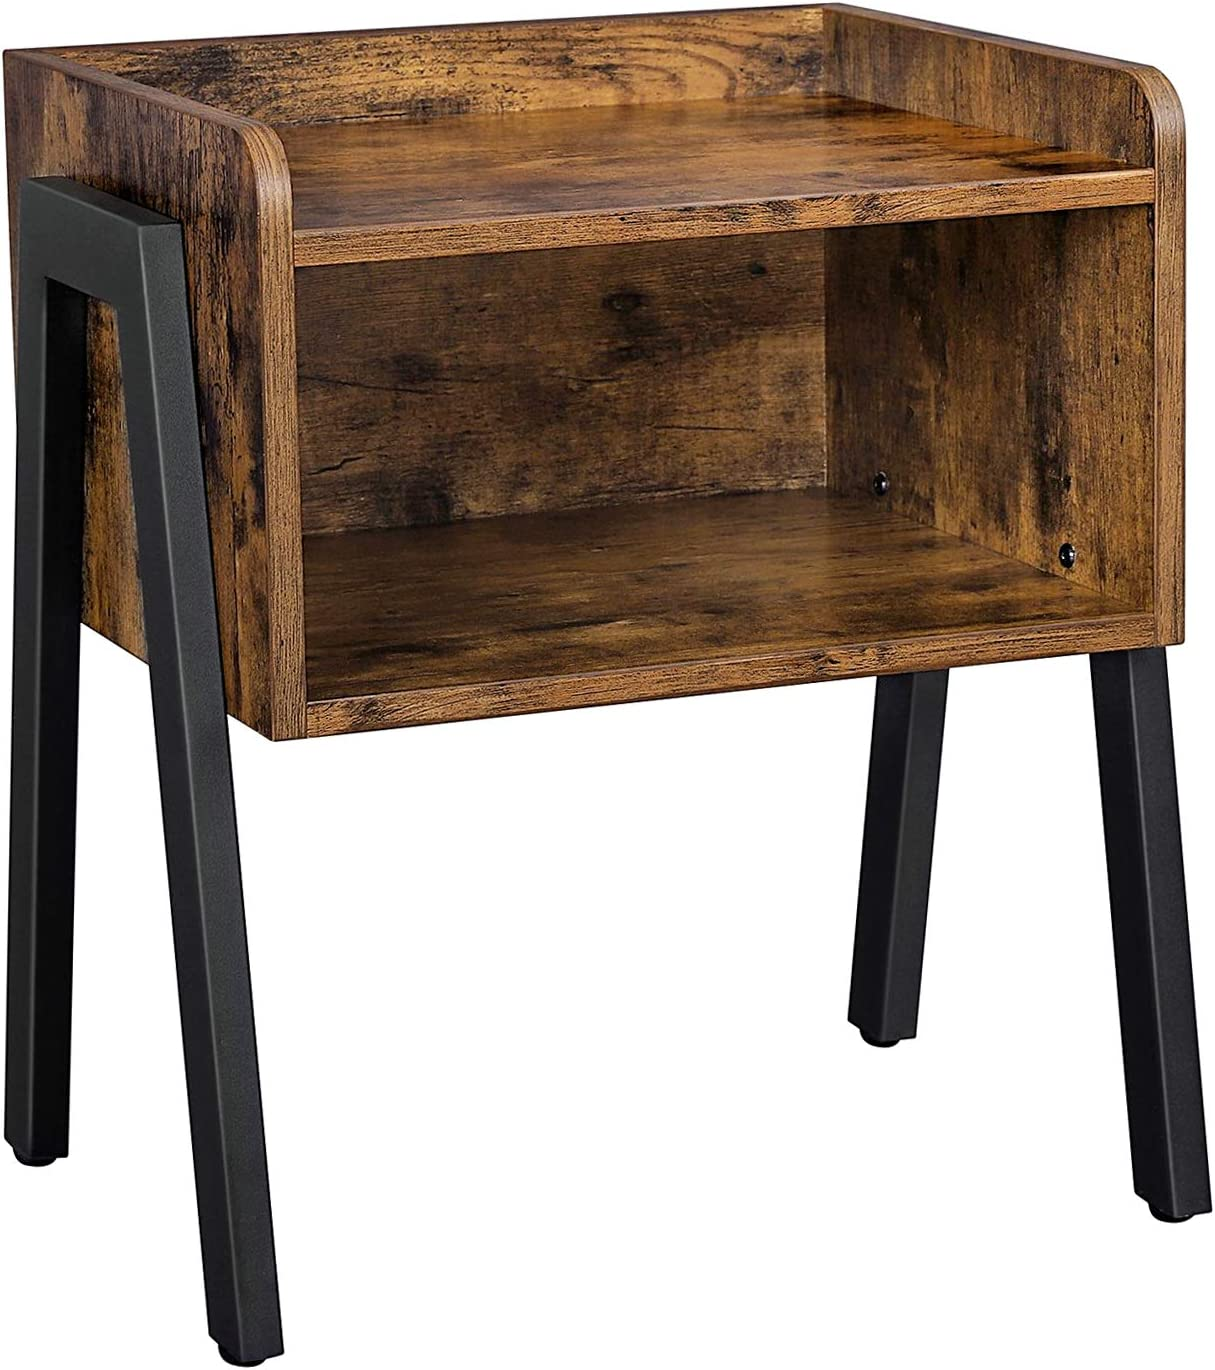 Small Industrial Chest Of Drawers Retro//Vintage Look Cool Furniture Desk tidy